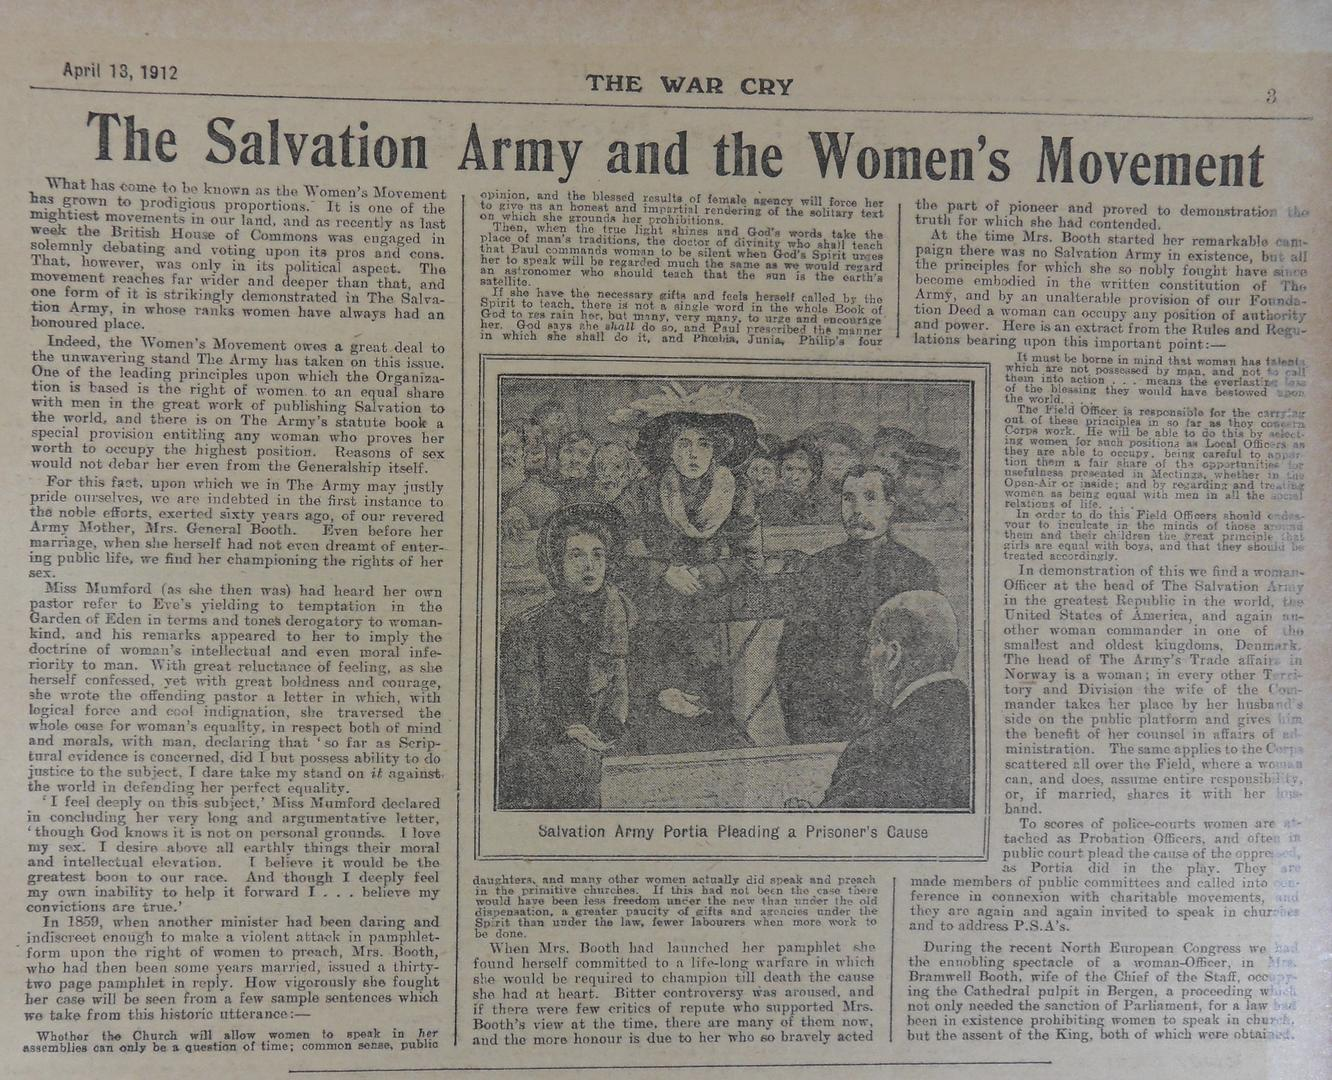 The Salvation Army and the Women's Movement', The War Cry, 13 April 1912